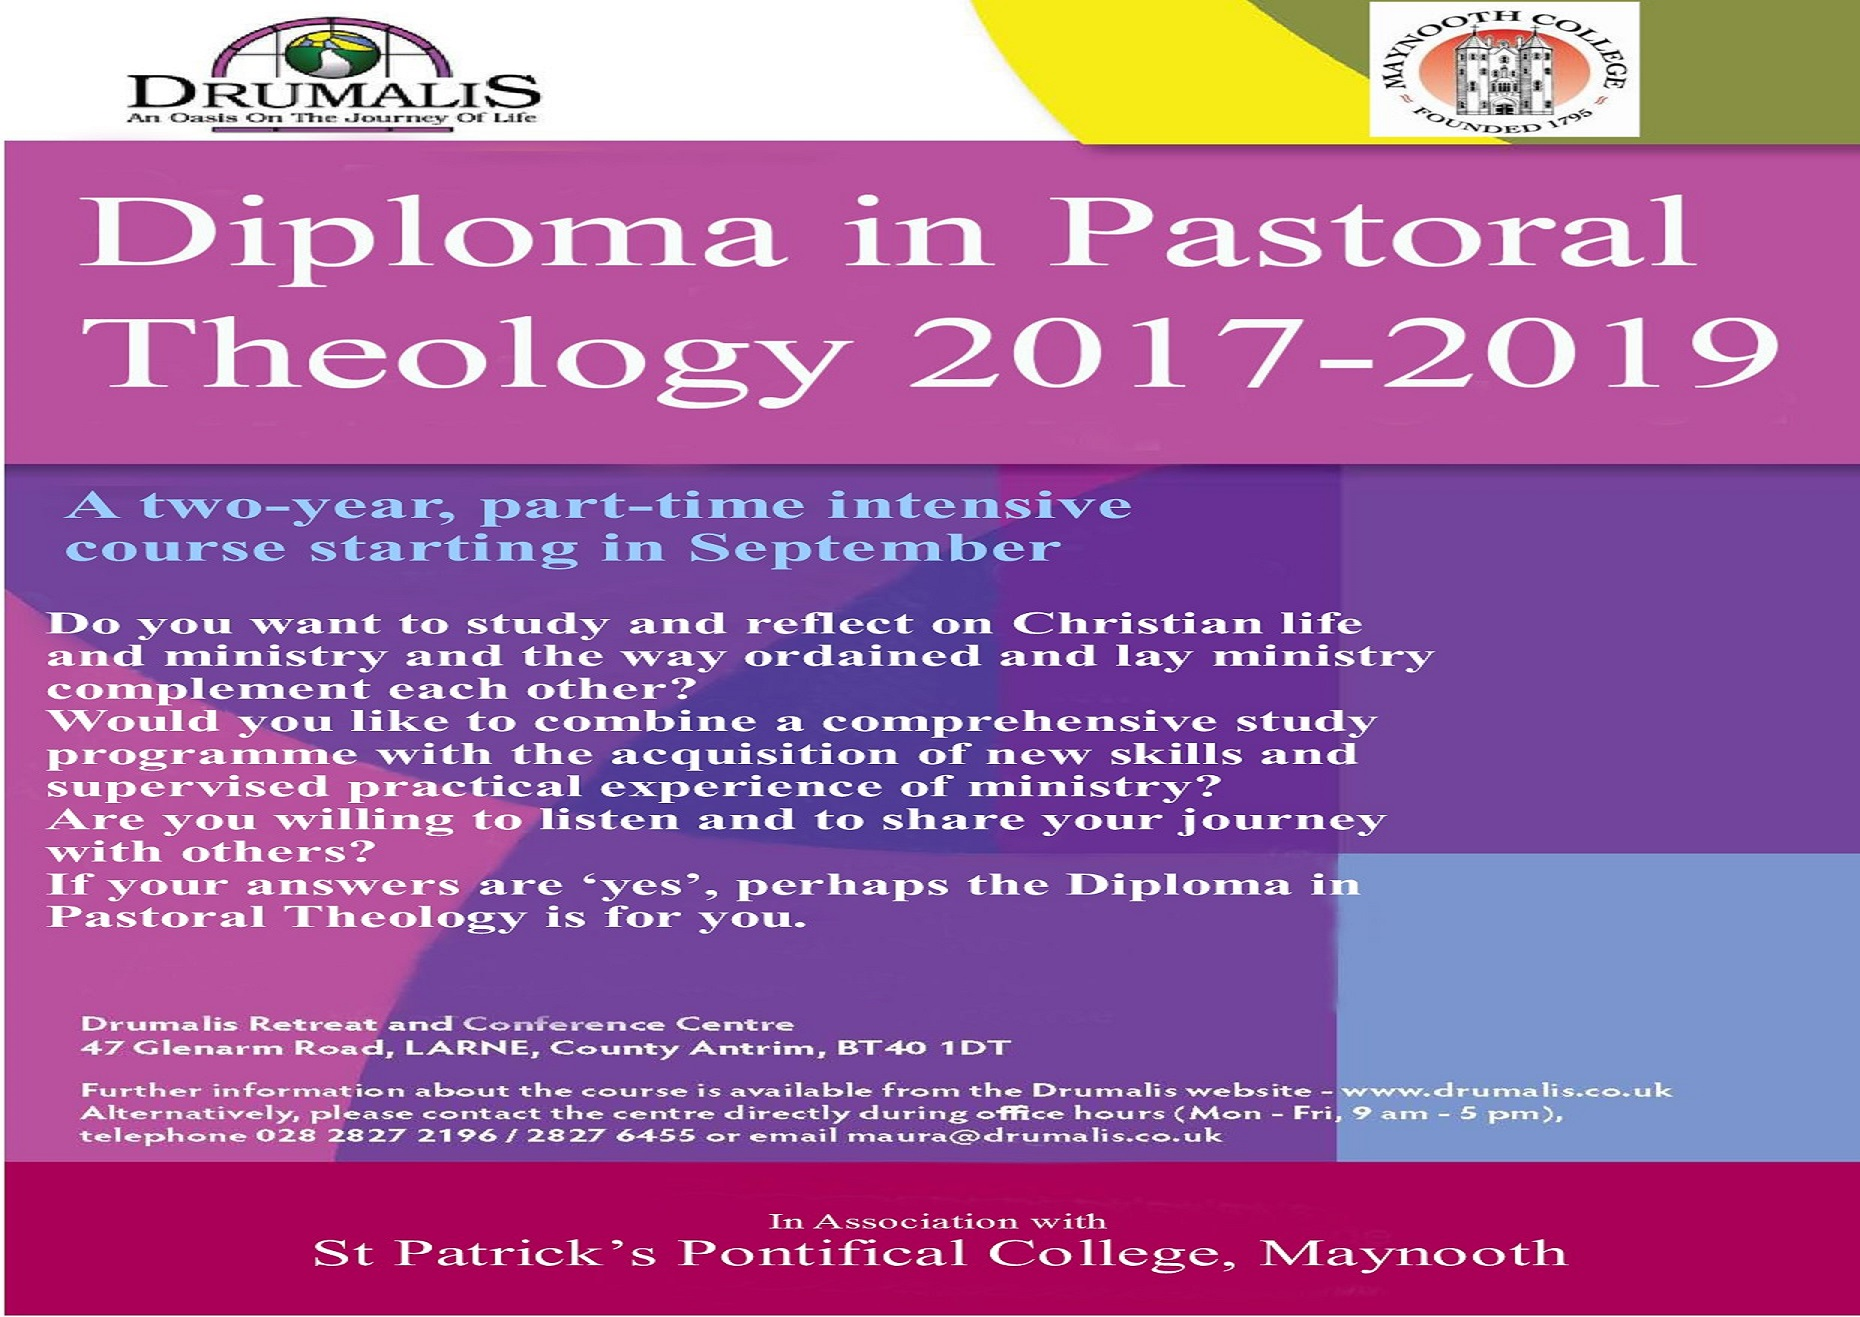 Diploma-in-Pastoral-Theology-Resize